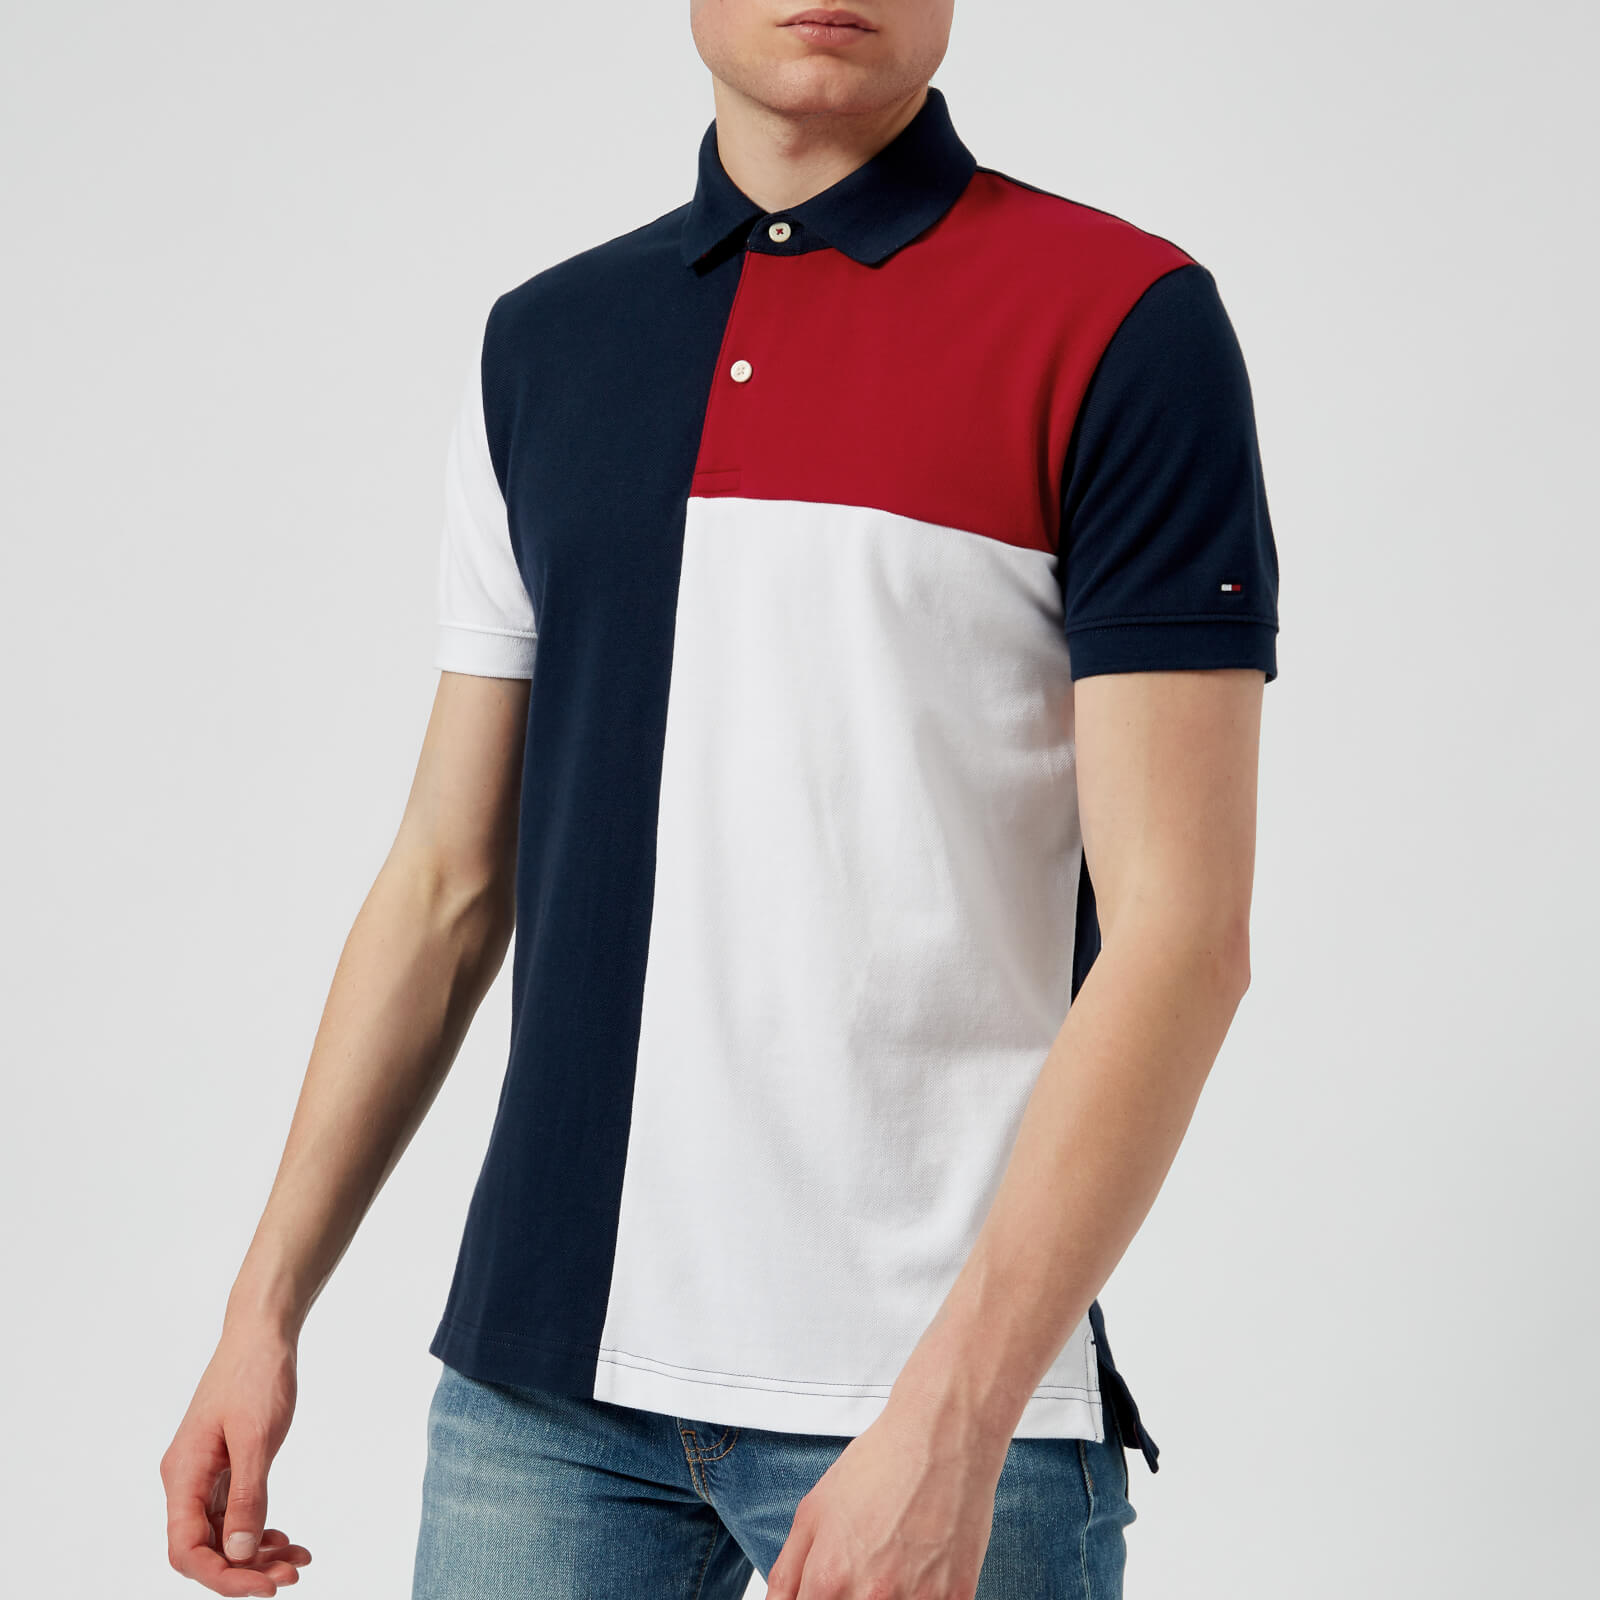 86457dda4 Tommy Hilfiger Men s Unique Colour Block Polo Shirt - Navy Blazer Clothing